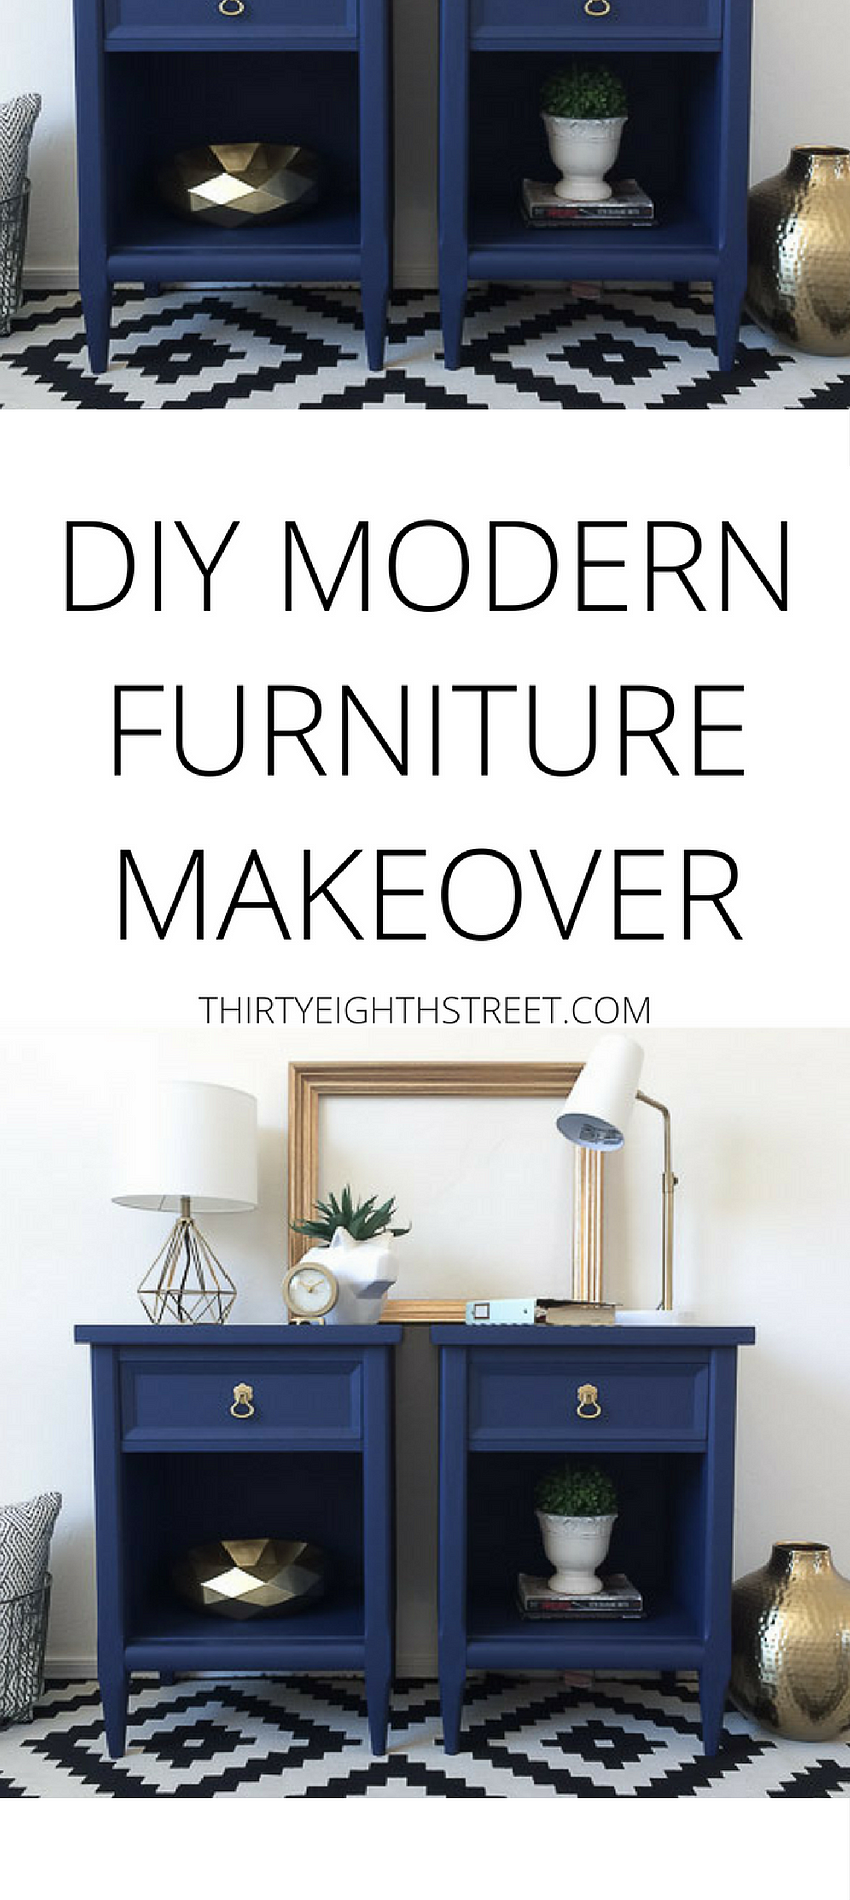 Gorgeous modern diy furniture makeover paint your old furniture for a modern sleek look diy modern furniture diy painted furniture blue furniture ideas